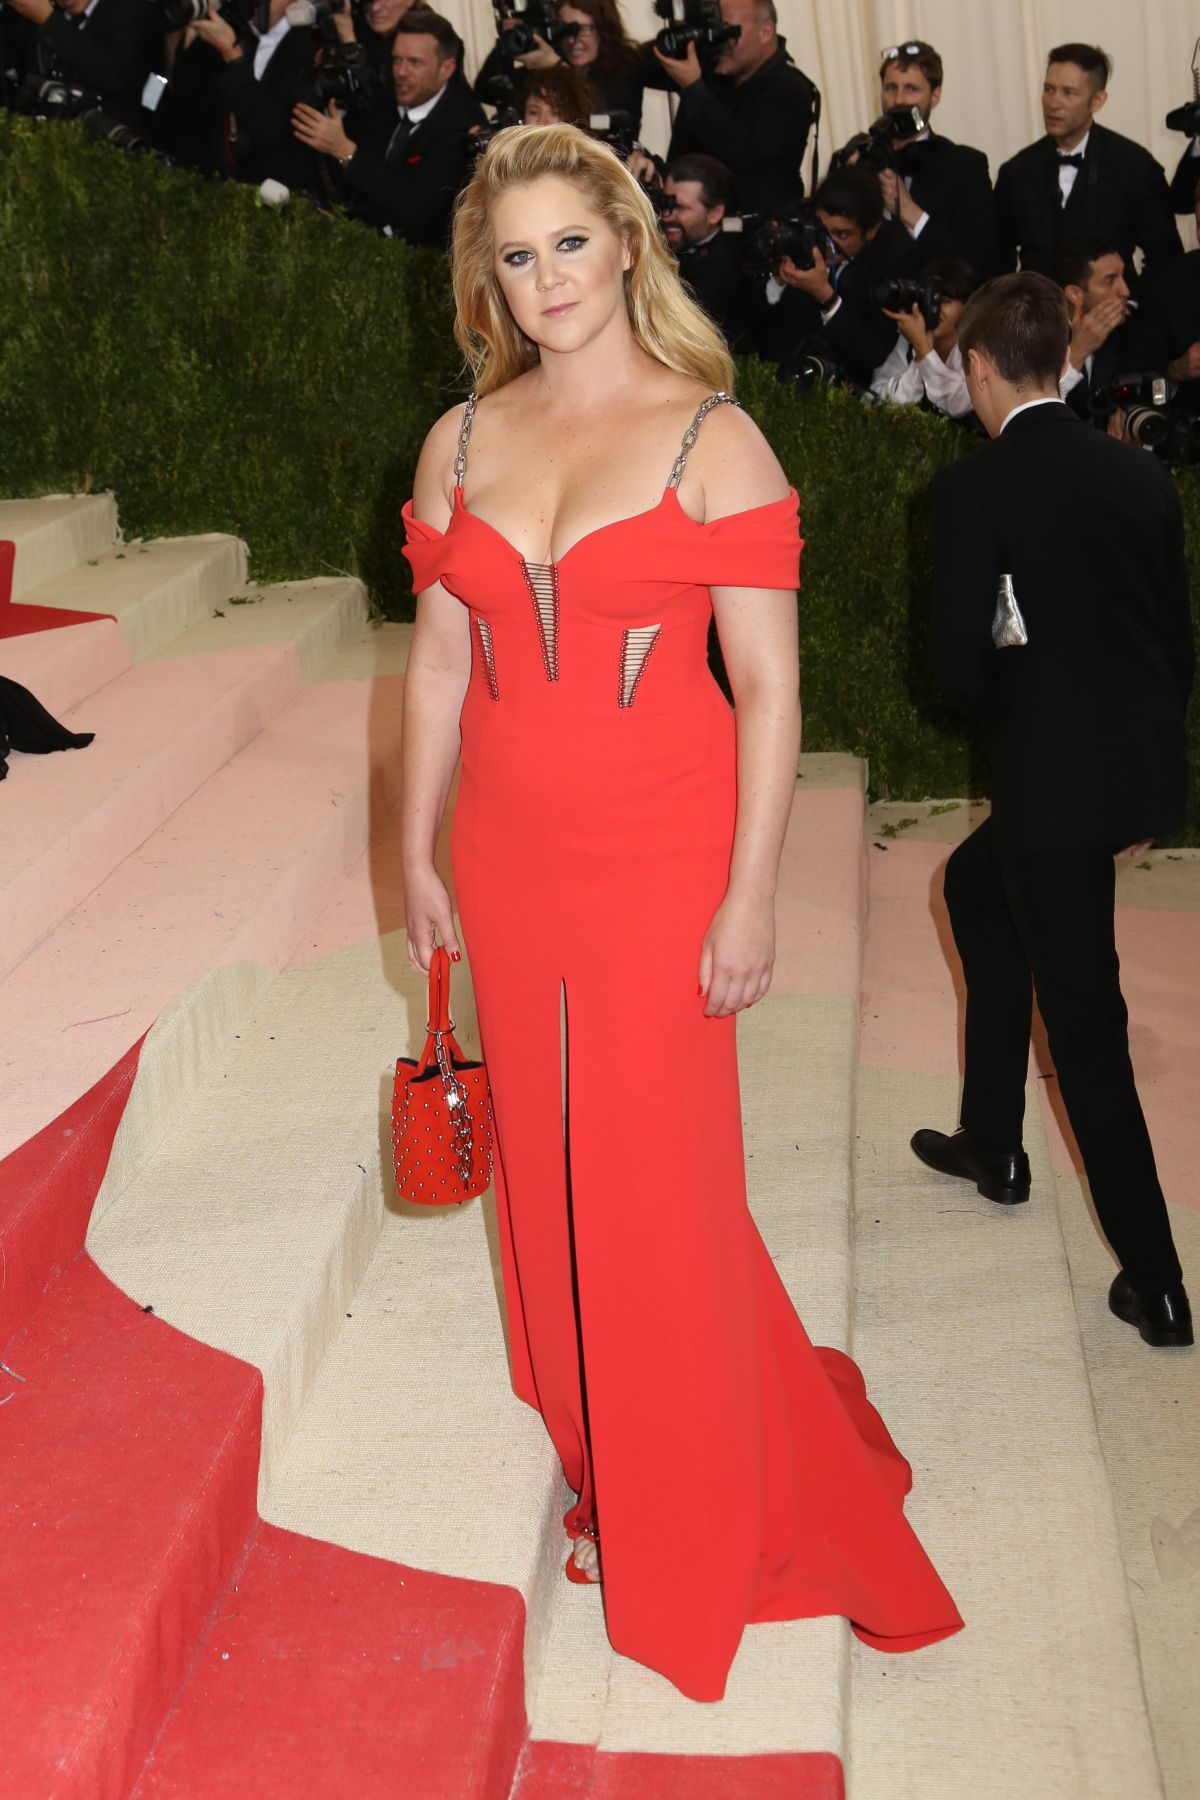 AMY SCHUMER at Costume Institute Gala 2016 in New York 05/02/2016